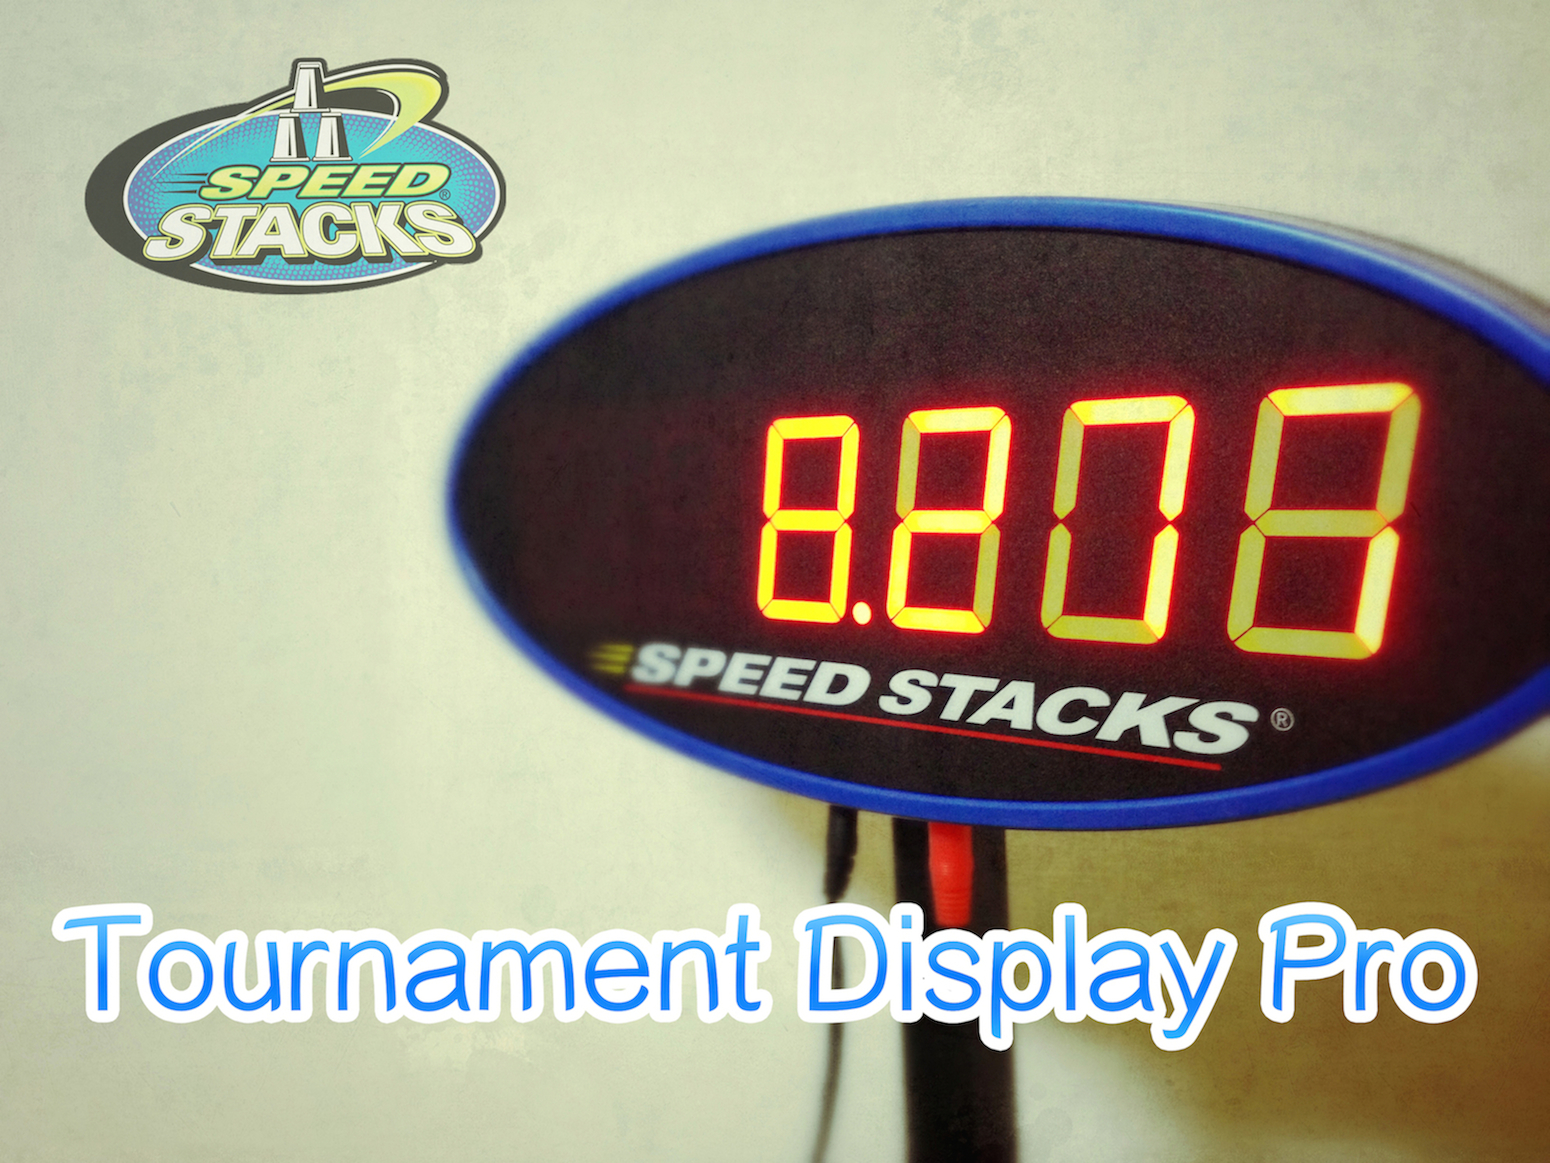 Tournament Display Pro